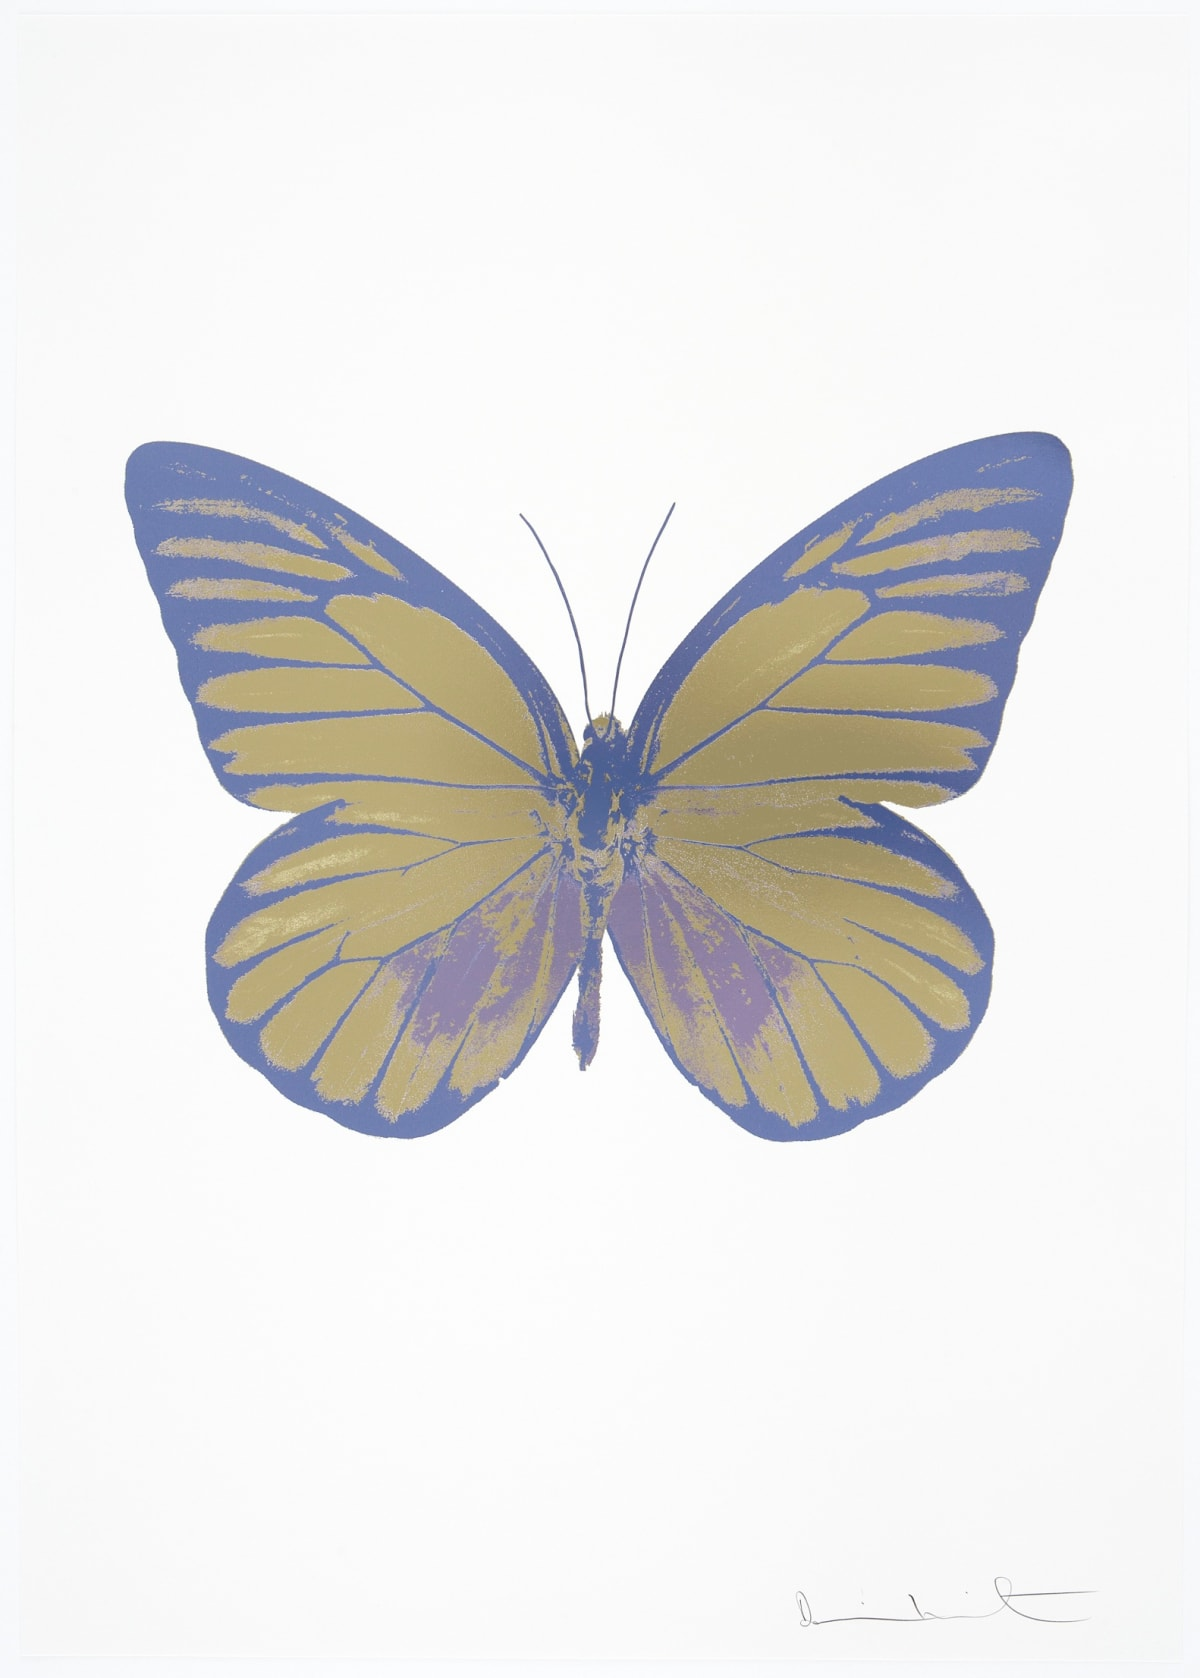 Damien Hirst The Souls I - Cool Gold/Aquarius/Cornflower Blue, 2010 3 colour foil block on 300gsm Arches 88 archival paper. Signed and numbered. Published by Paul Stolper and Other Criteria 72 x 51cm OC7761 / 659-24 Edition of 15